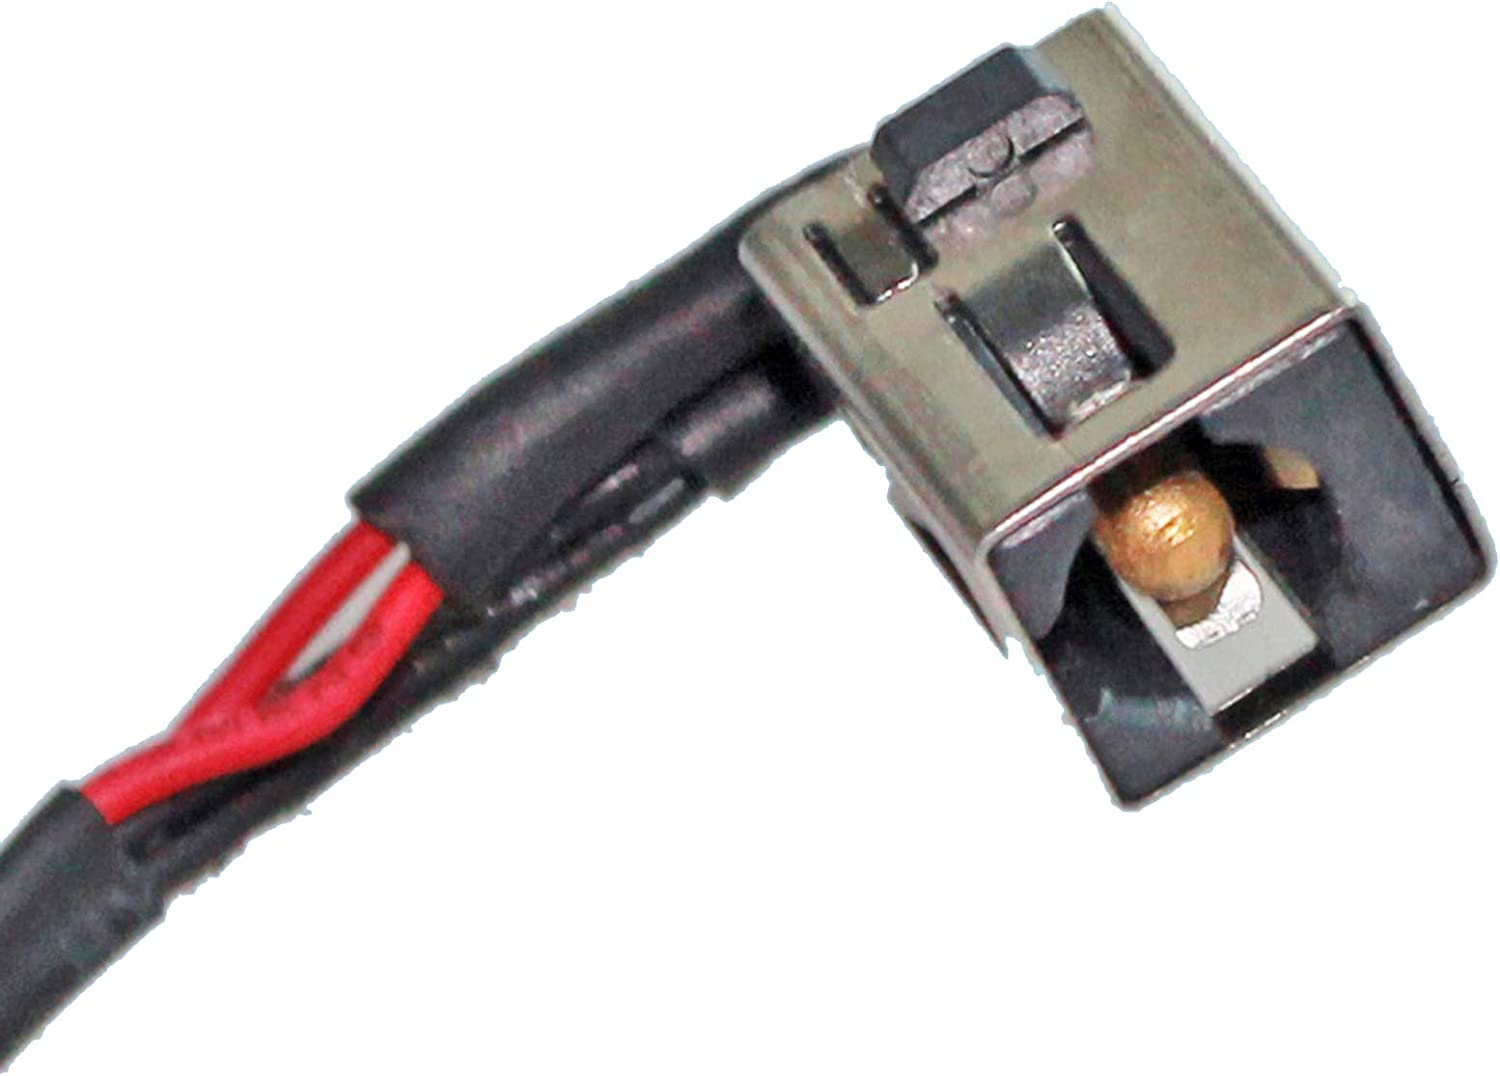 GinTai DC Power Jack Harness Cable Socket Plug Replacement for Lenovo IdeaPad P400 Touch Series P500 Z400 Z500 Series P400-59360580 P400-59360242 5936 P400-59RF0176 59RF Z500-5937 Z500-59372437 3pcs